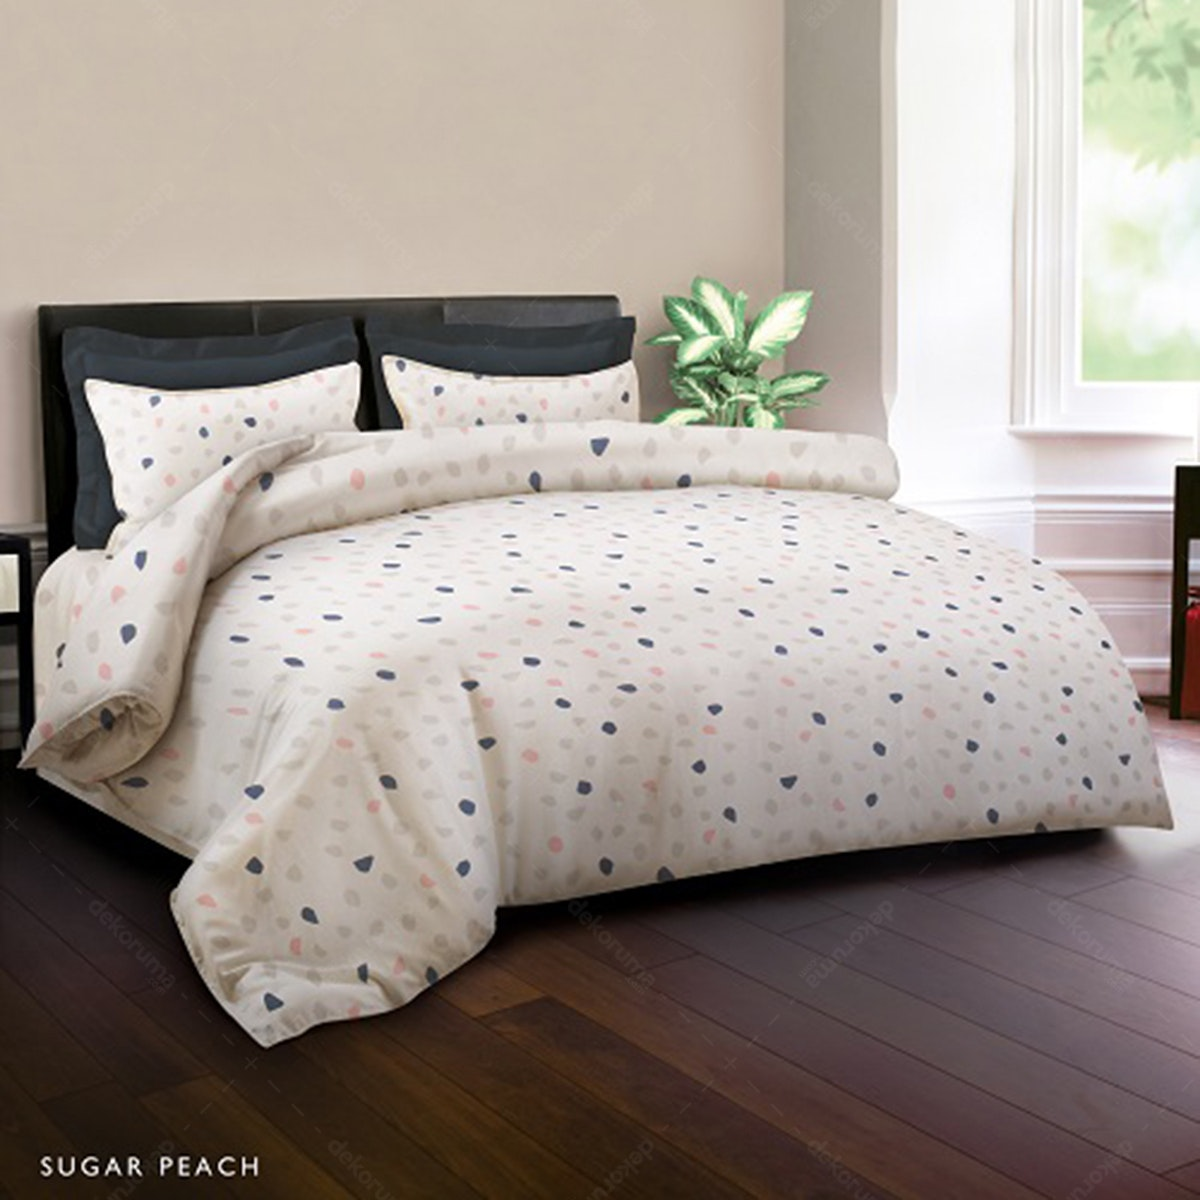 King Rabbit Set Bed Cover & Sprei Sarung Bantal Extra King Motif Sugar - Peach Uk 200x200x40 cm